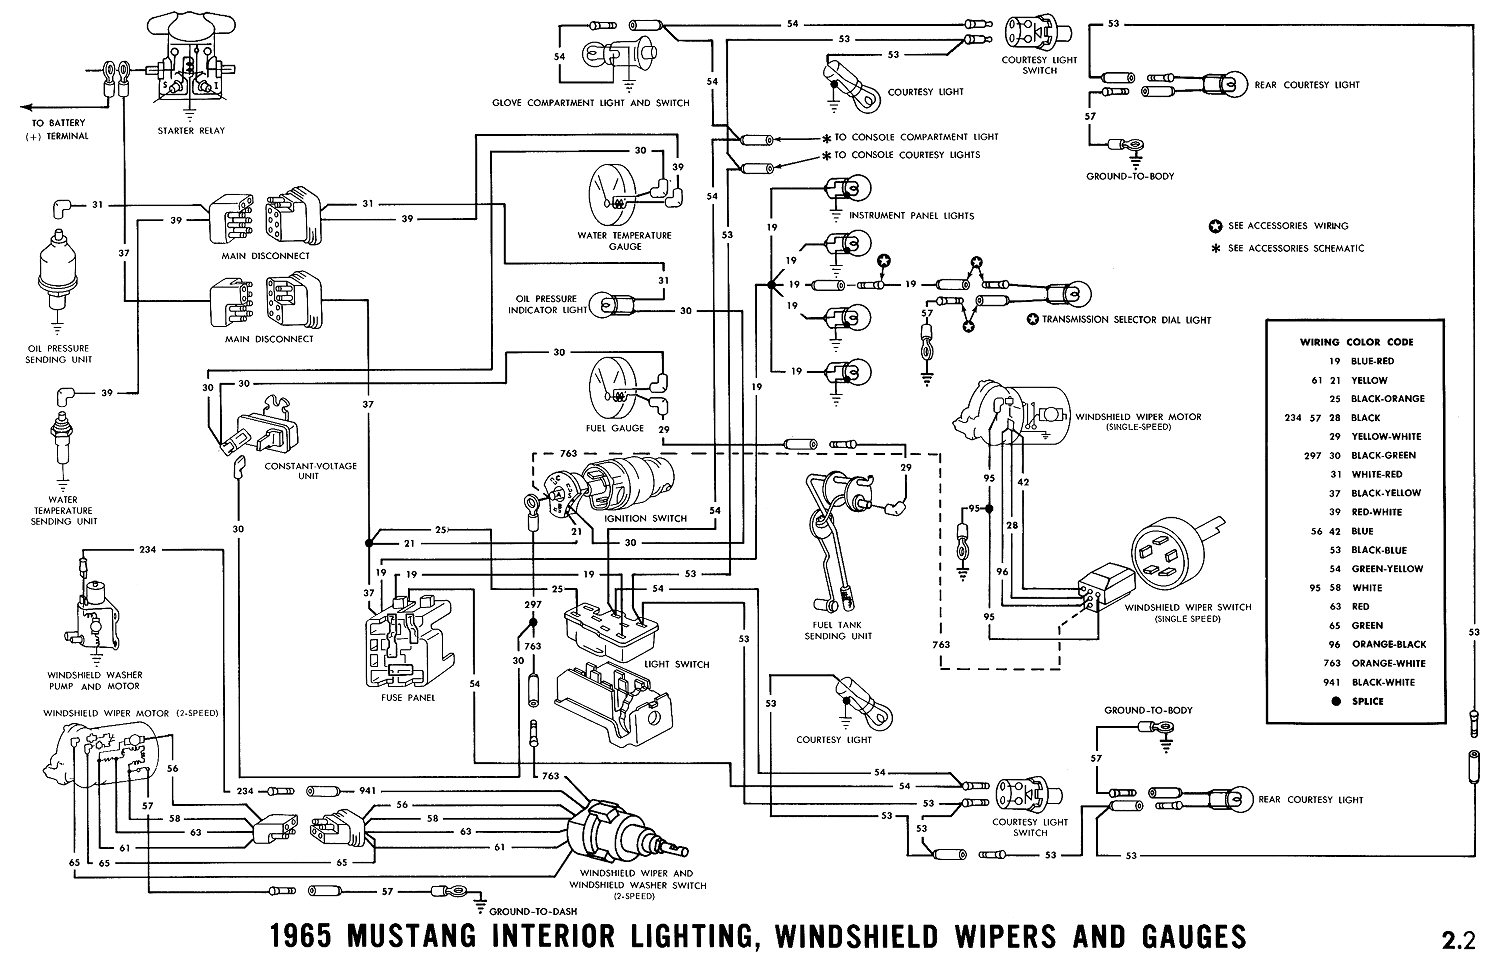 1965 Mustang Wiring Diagrams Average Joe Restoration 1989 Suburban Rear Window Diagram Oil Pressure